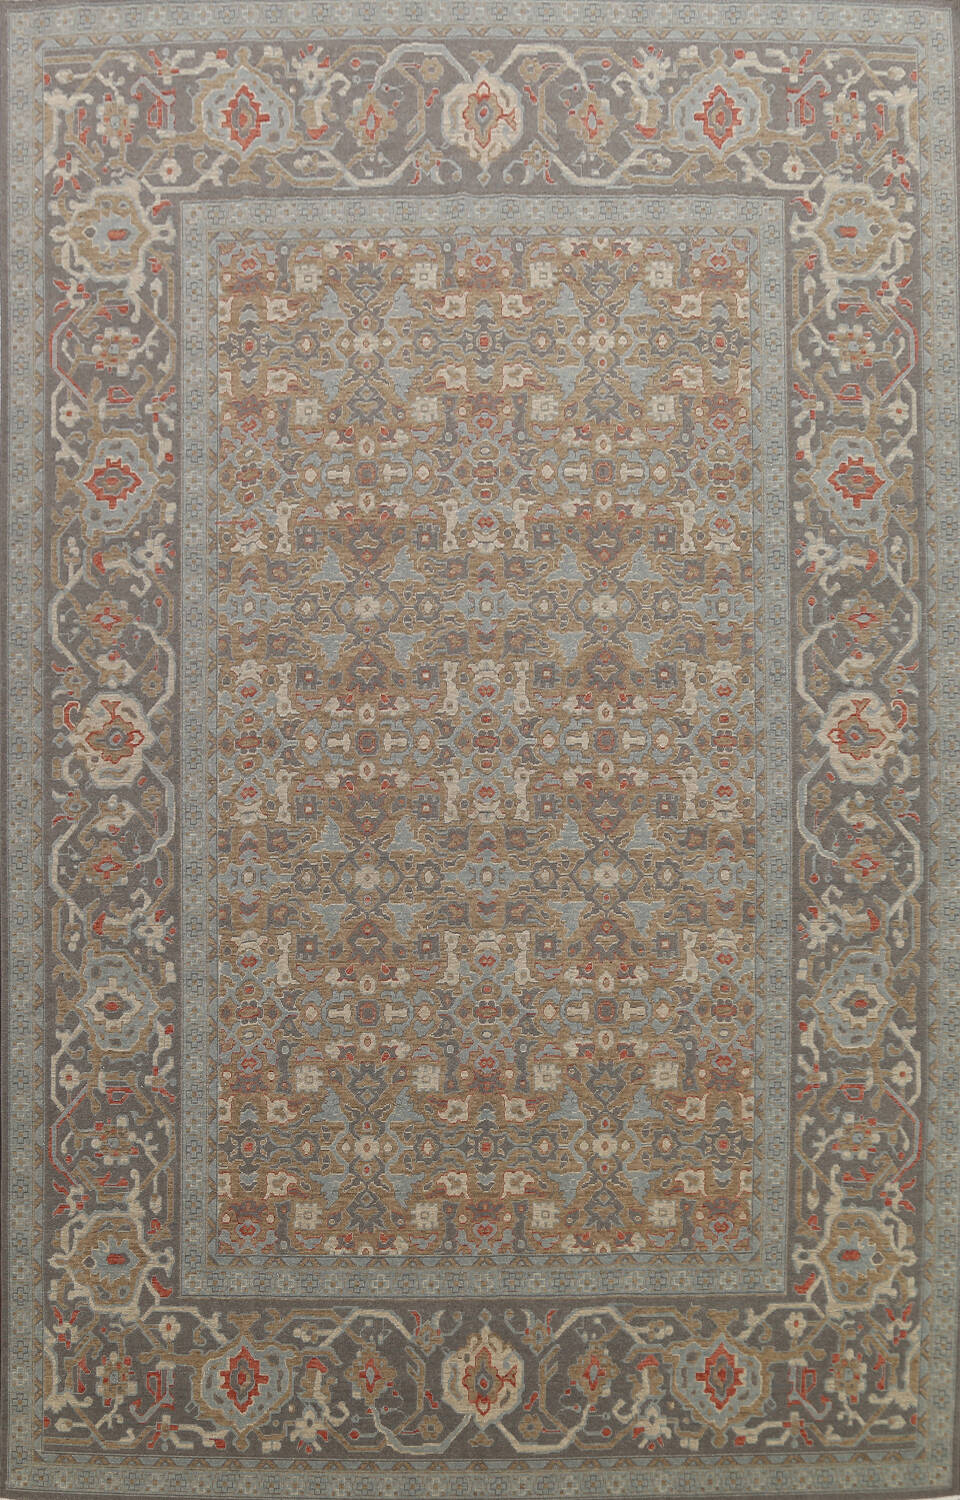 Silver Washed Ziegler Turkish Area Rug 9x12 image 1